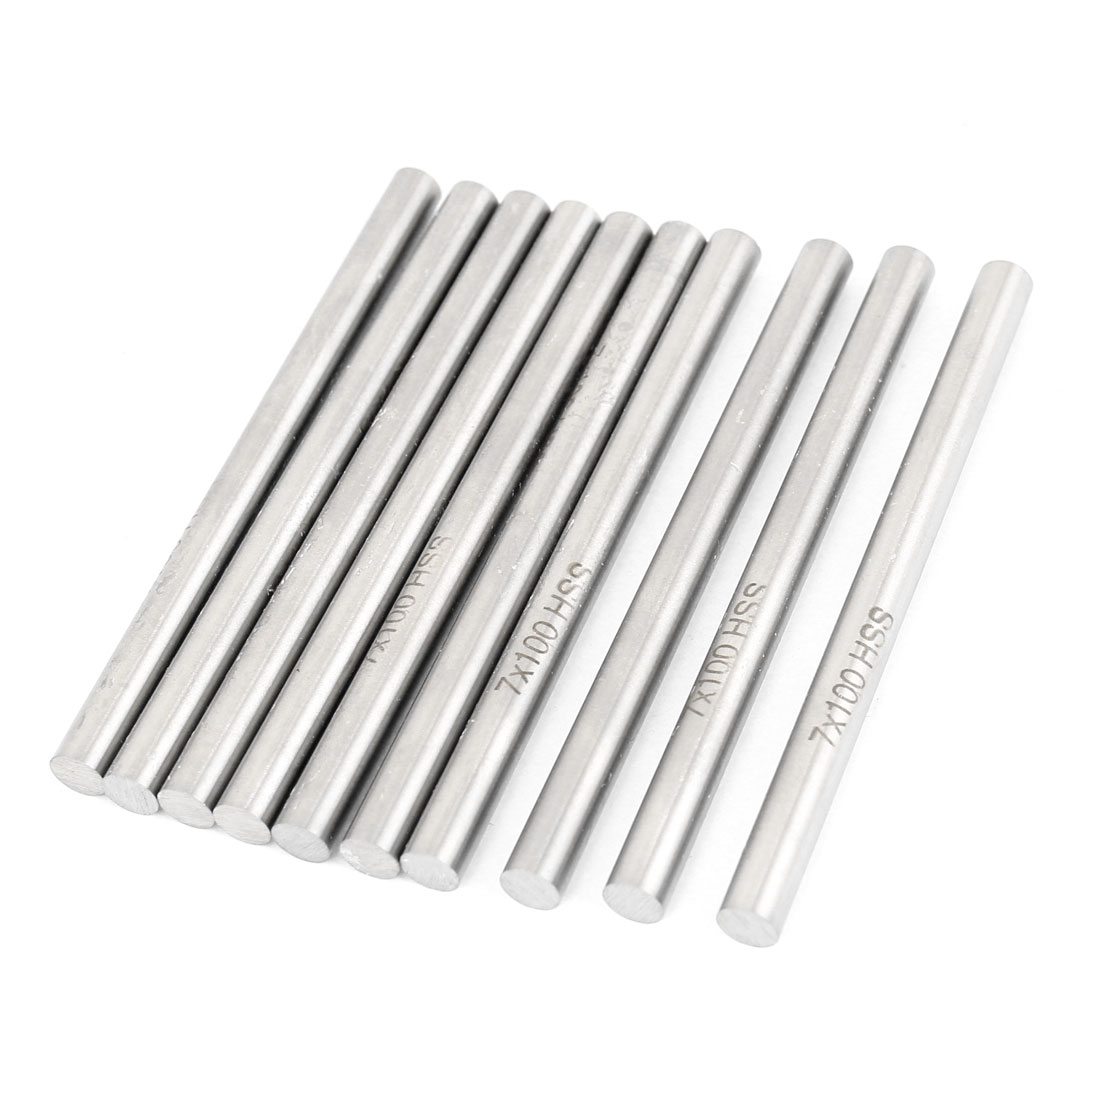 7mm x 100mm Graving Tool Round Turning Lathe Bars Silver Tone 10 Pcs